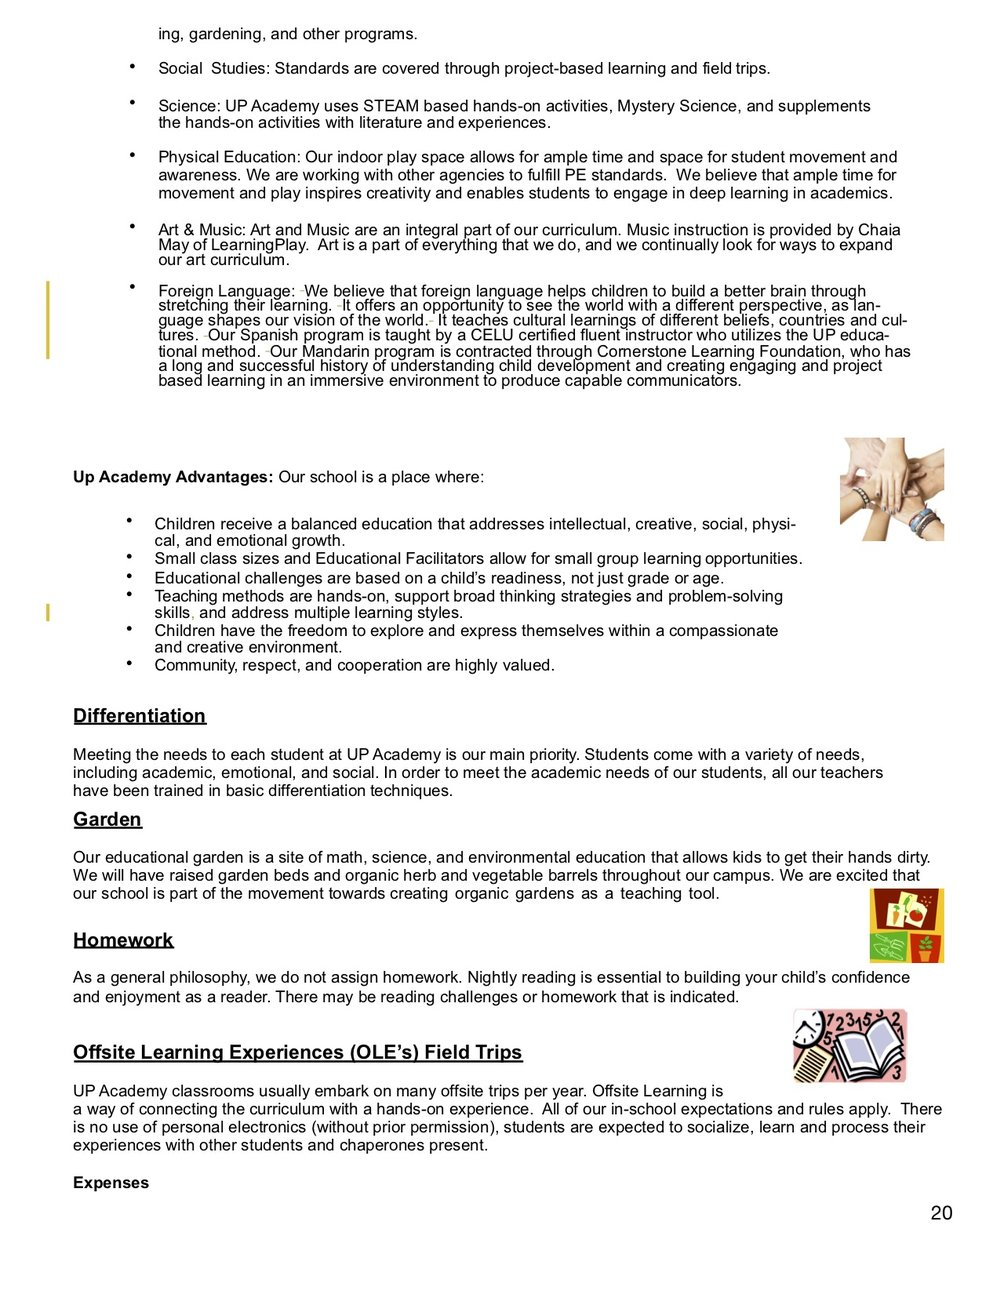 18-19 Parent and Student Handbook V4-21.jpg